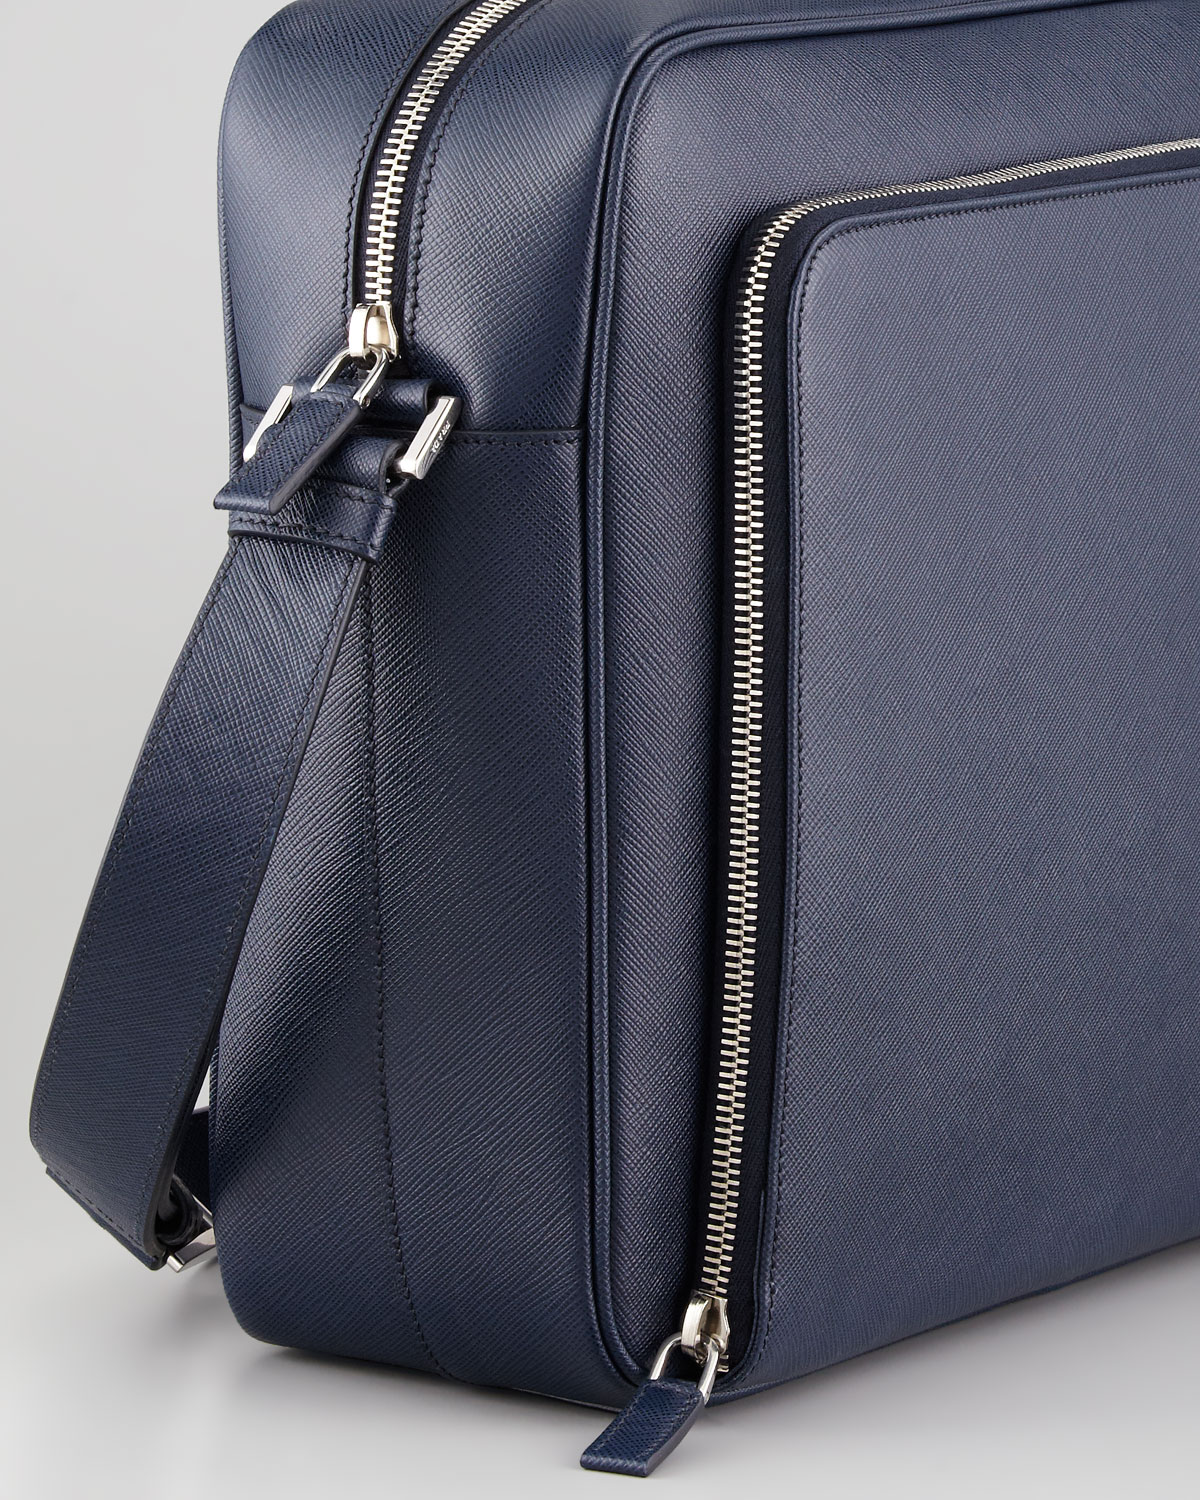 adfa87ae2c6534 ... usa prada saffiano ipad messenger bag in blue for men lyst 6fe10 62fdc